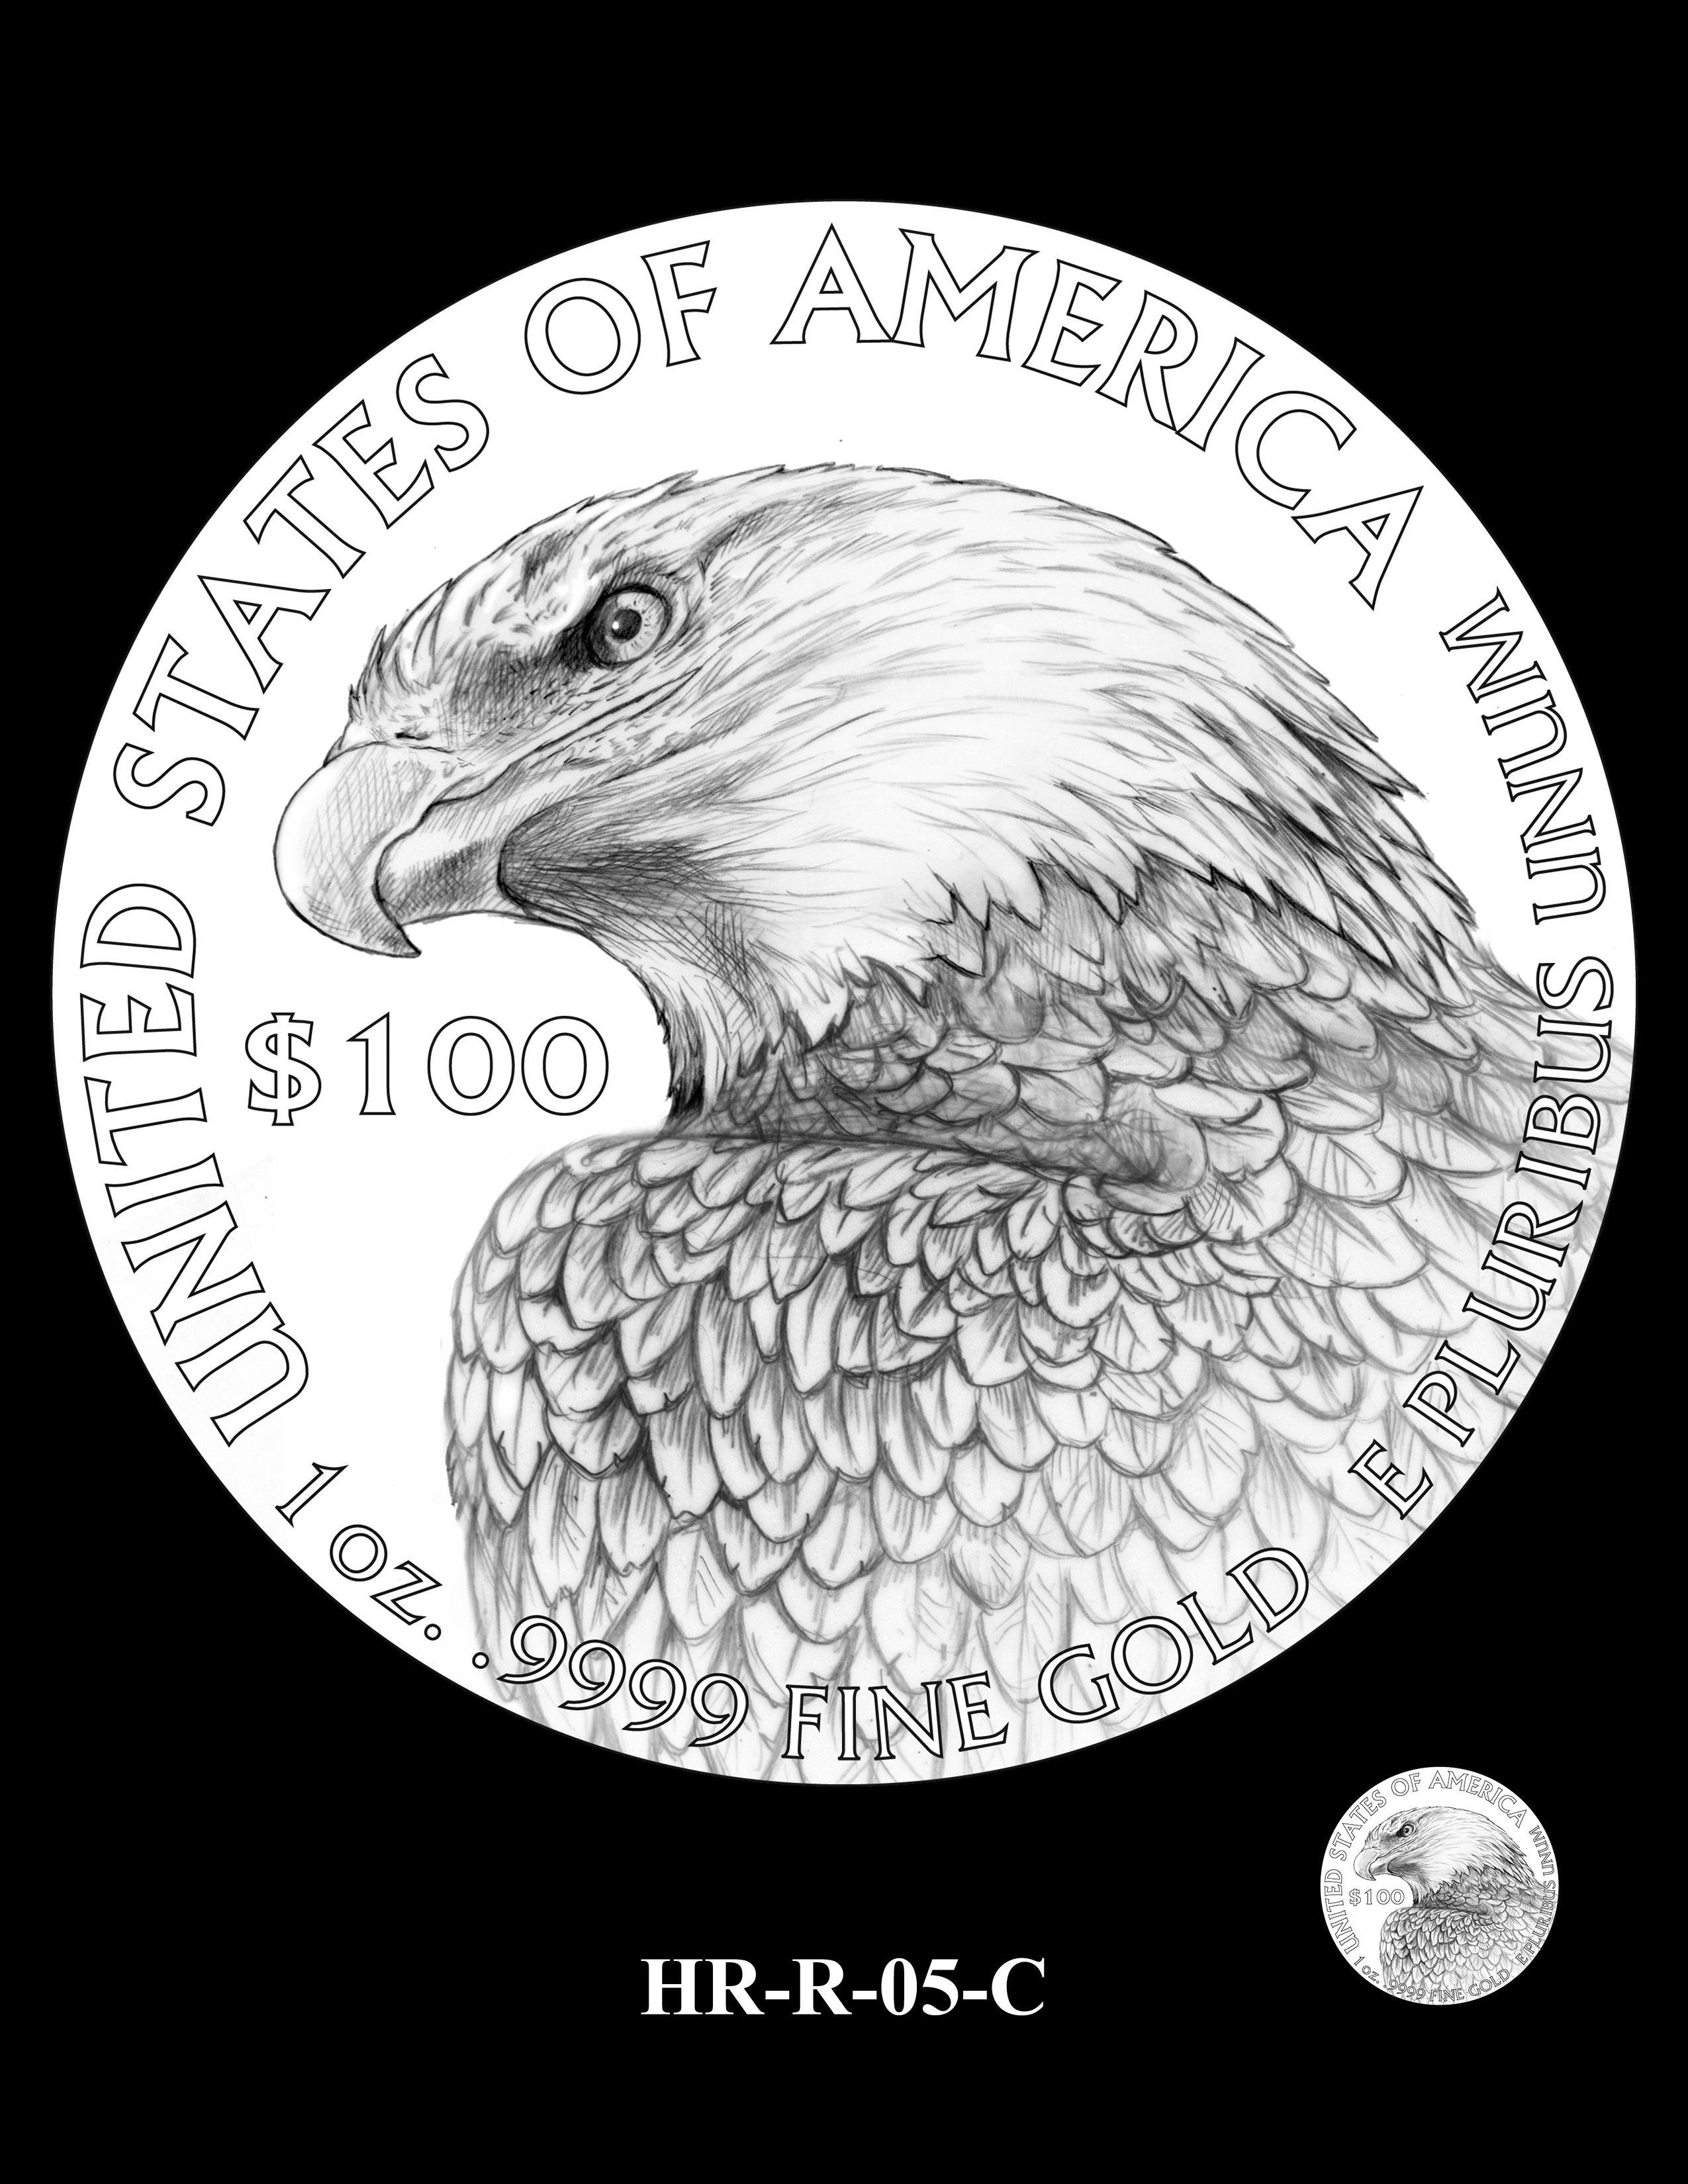 HR-R-05-C - 2017 American Liberty High Relief Gold Coin and Silver Medal Program